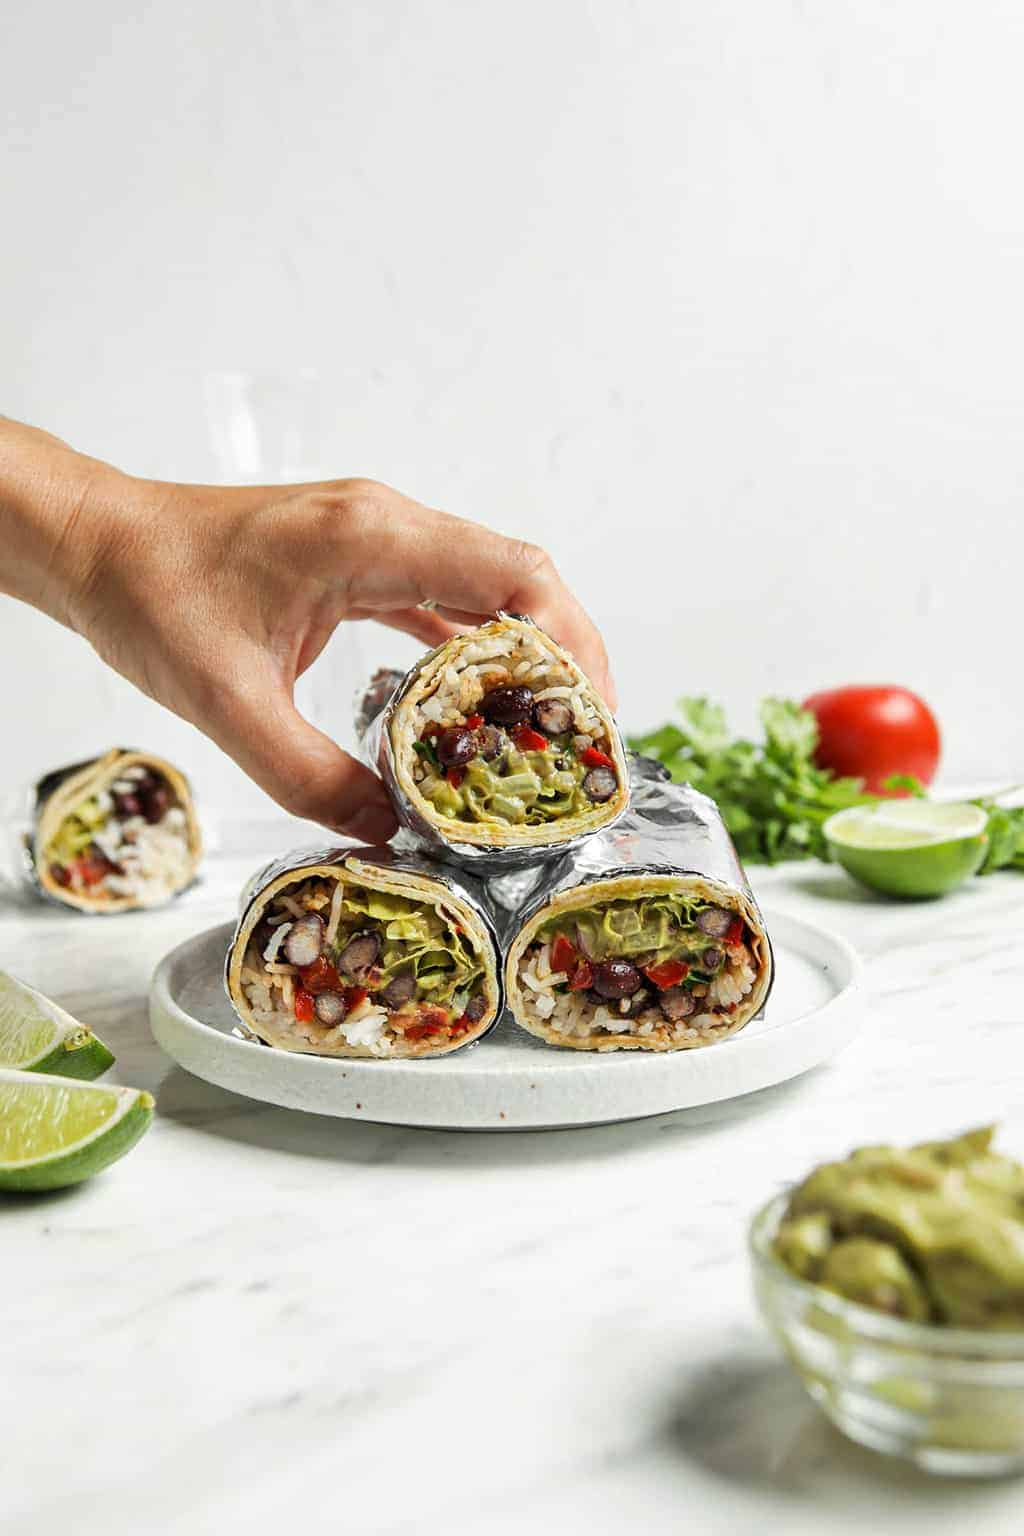 front view of hand picking up a burrito from a stack of three.